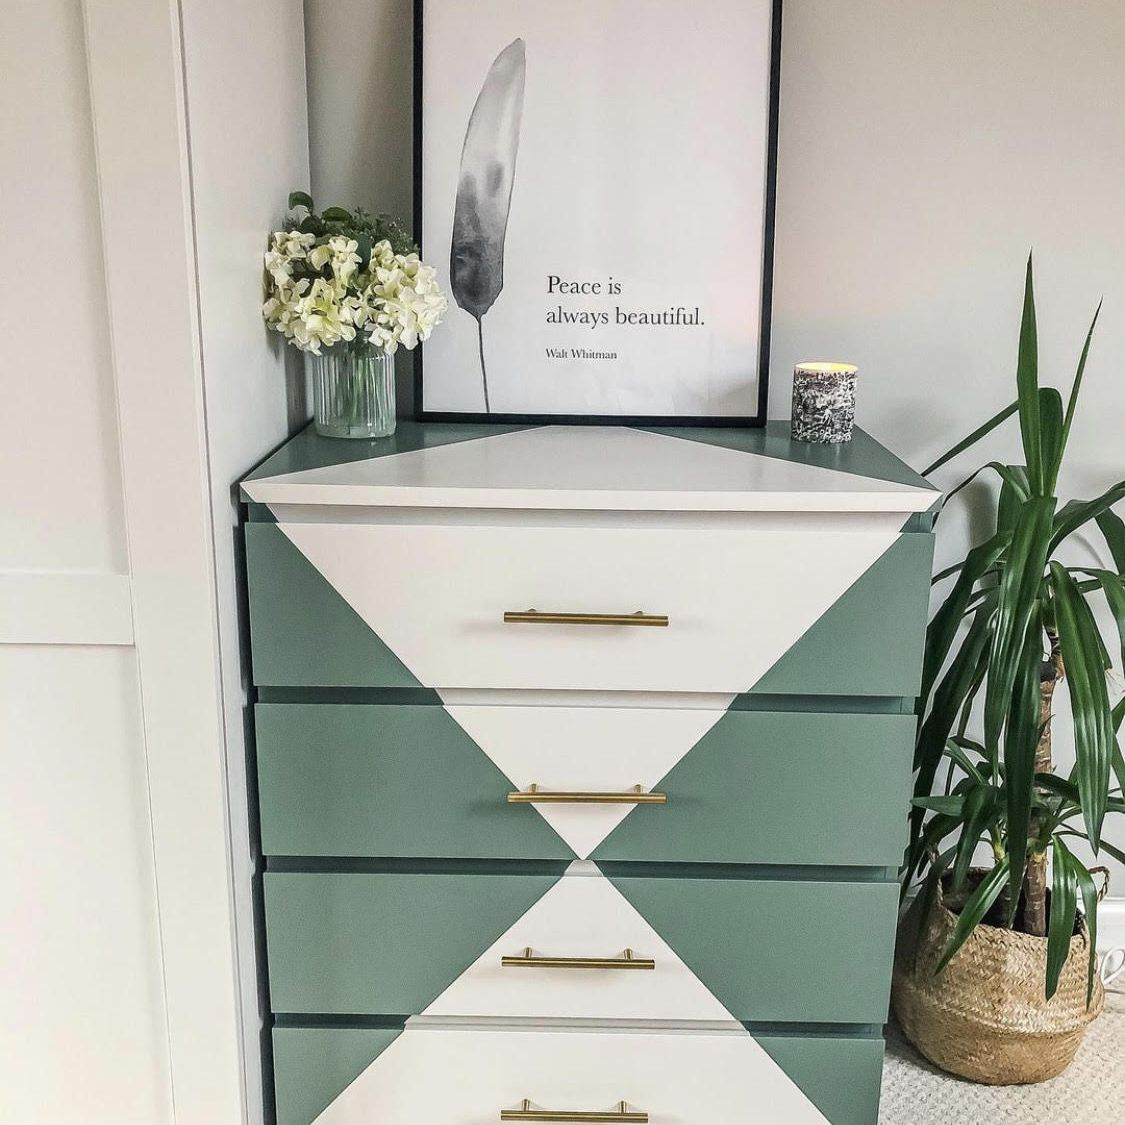 IKEA Malm dresser painted with green triangles